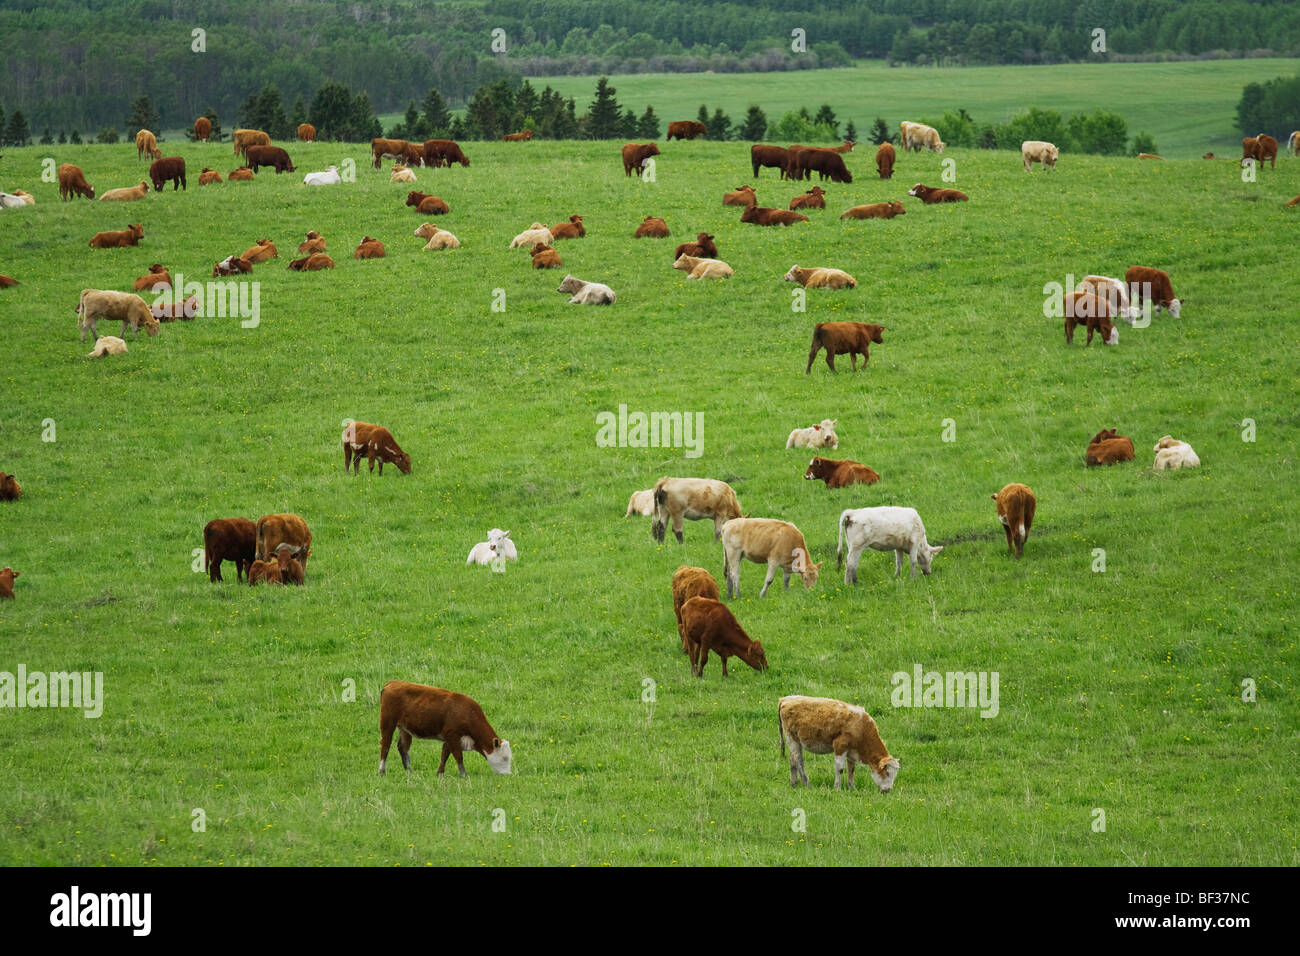 Livestock - Mixed breeds of young beef cows grazing and resting on a green pasture / Alberta, Canada. - Stock Image